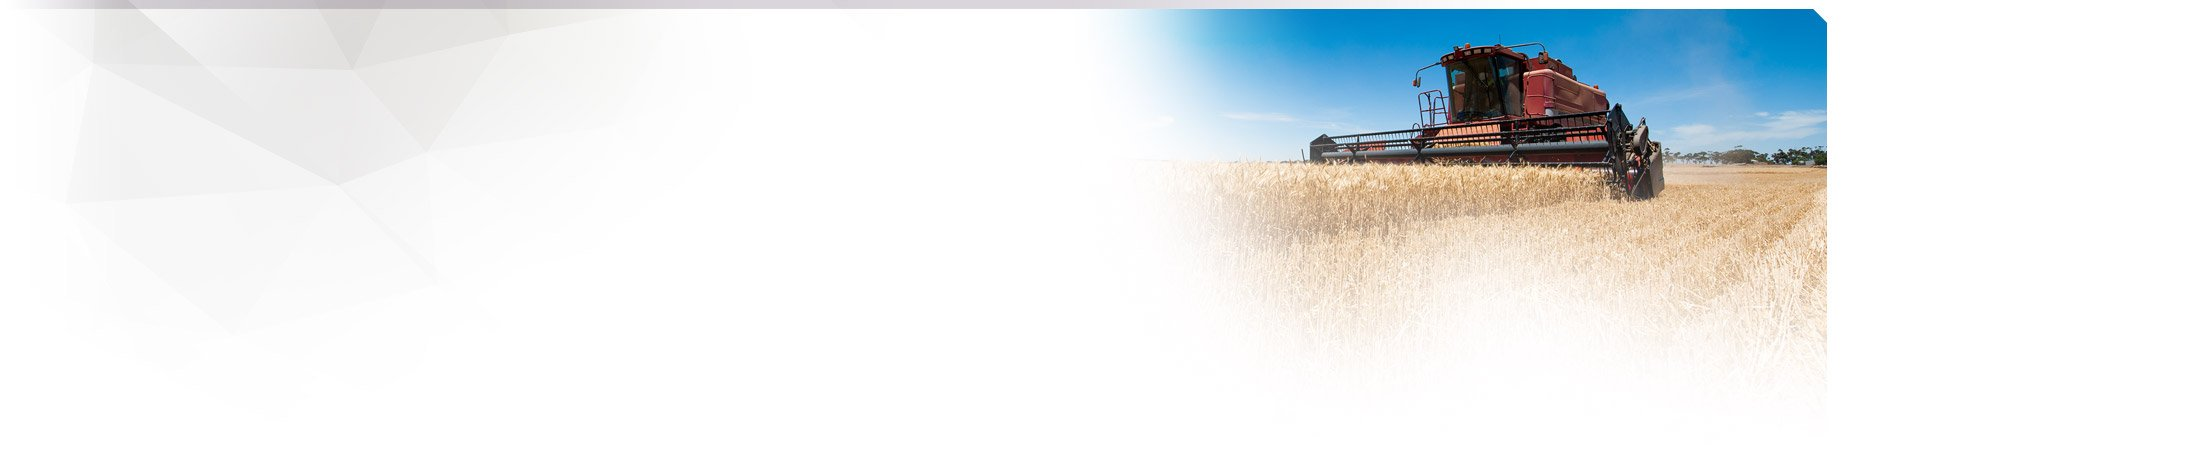 agribusiness_page